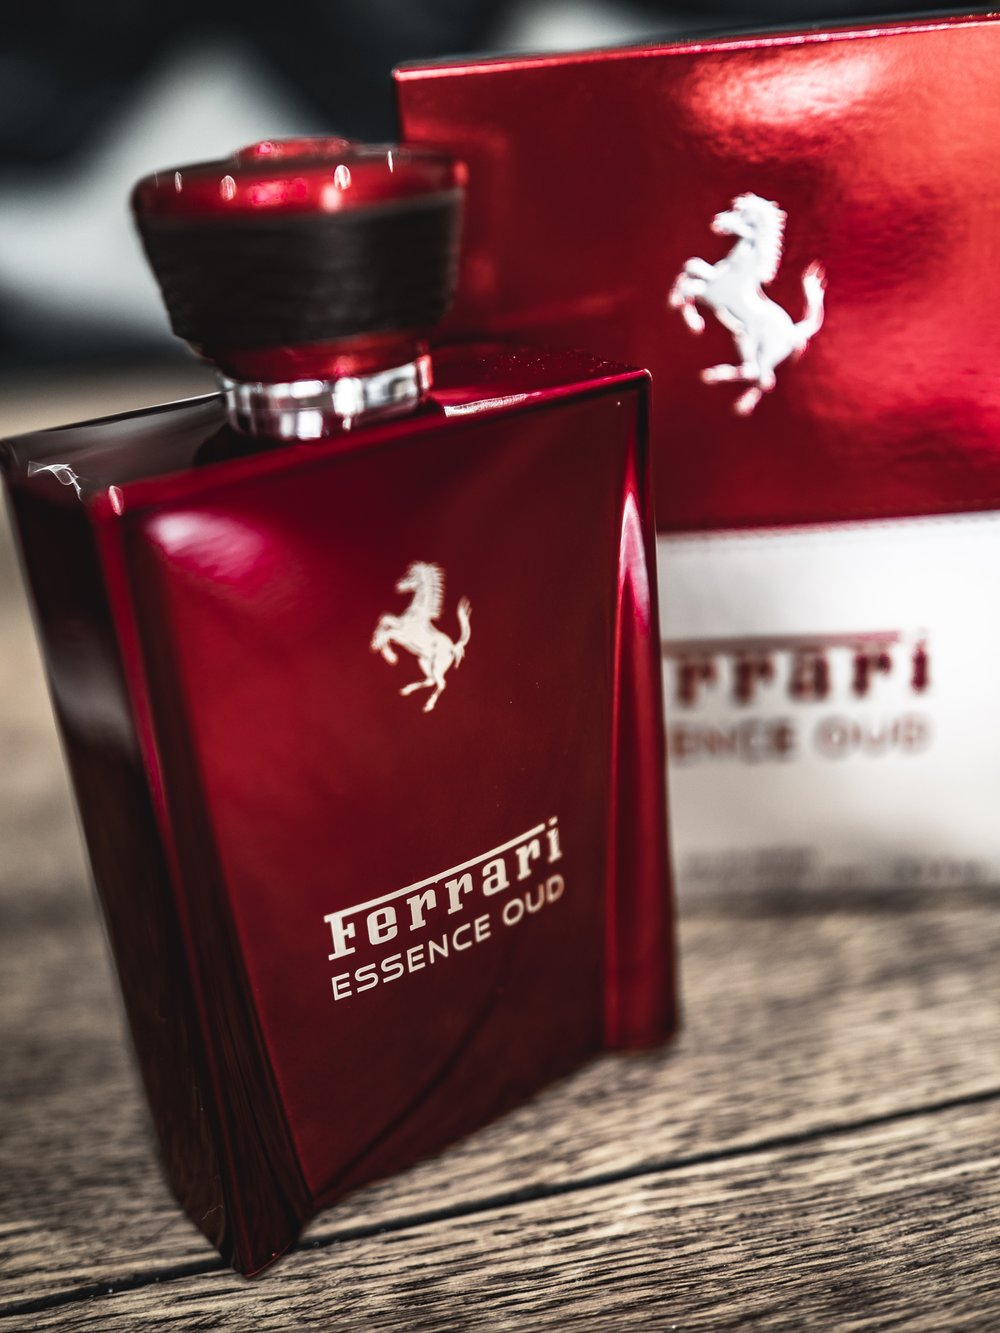 Ferrari Essence Oud Fragrance Review